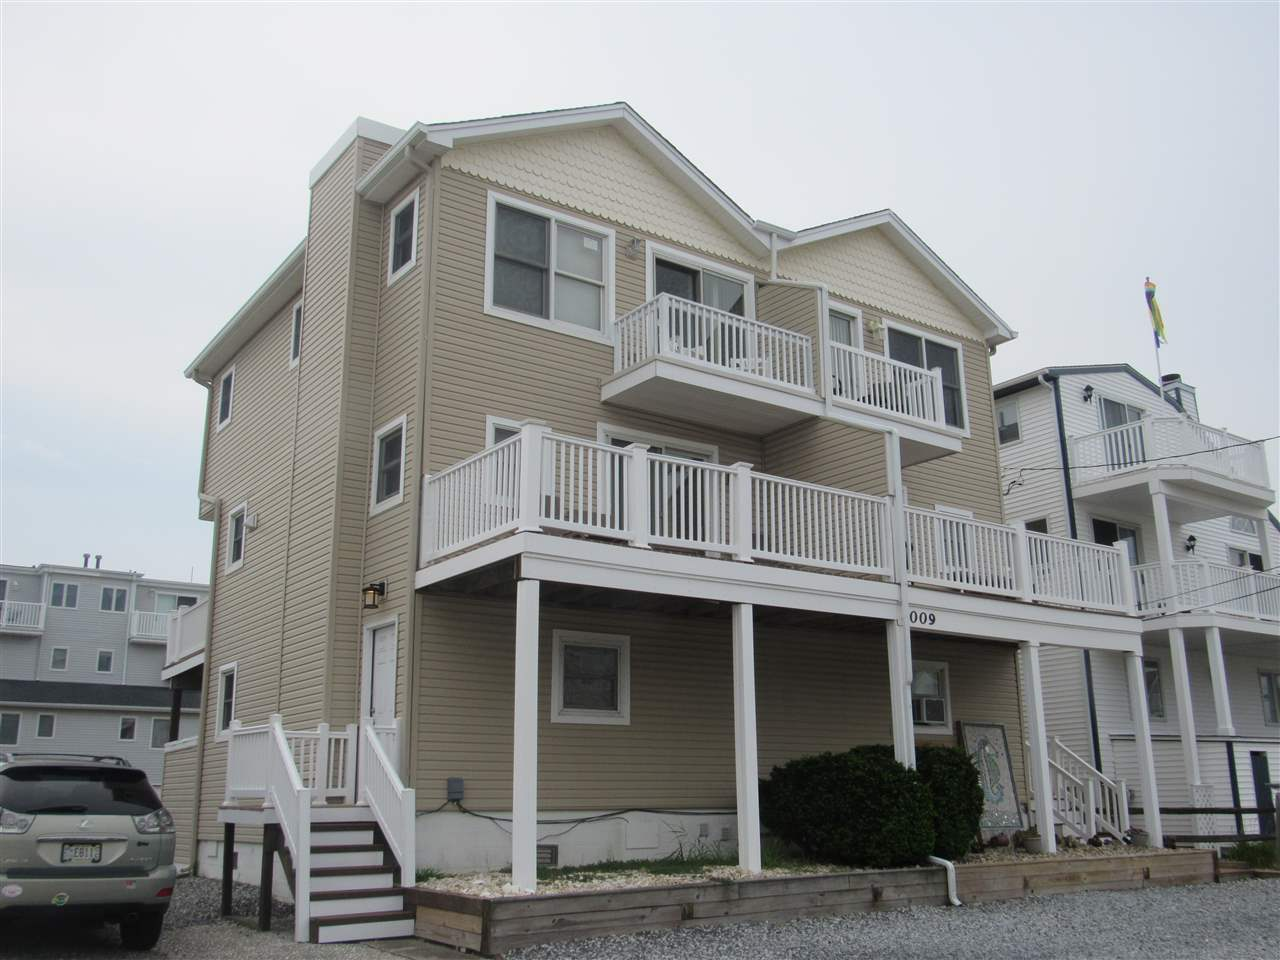 3009 Landis Avenue, Sea Isle City